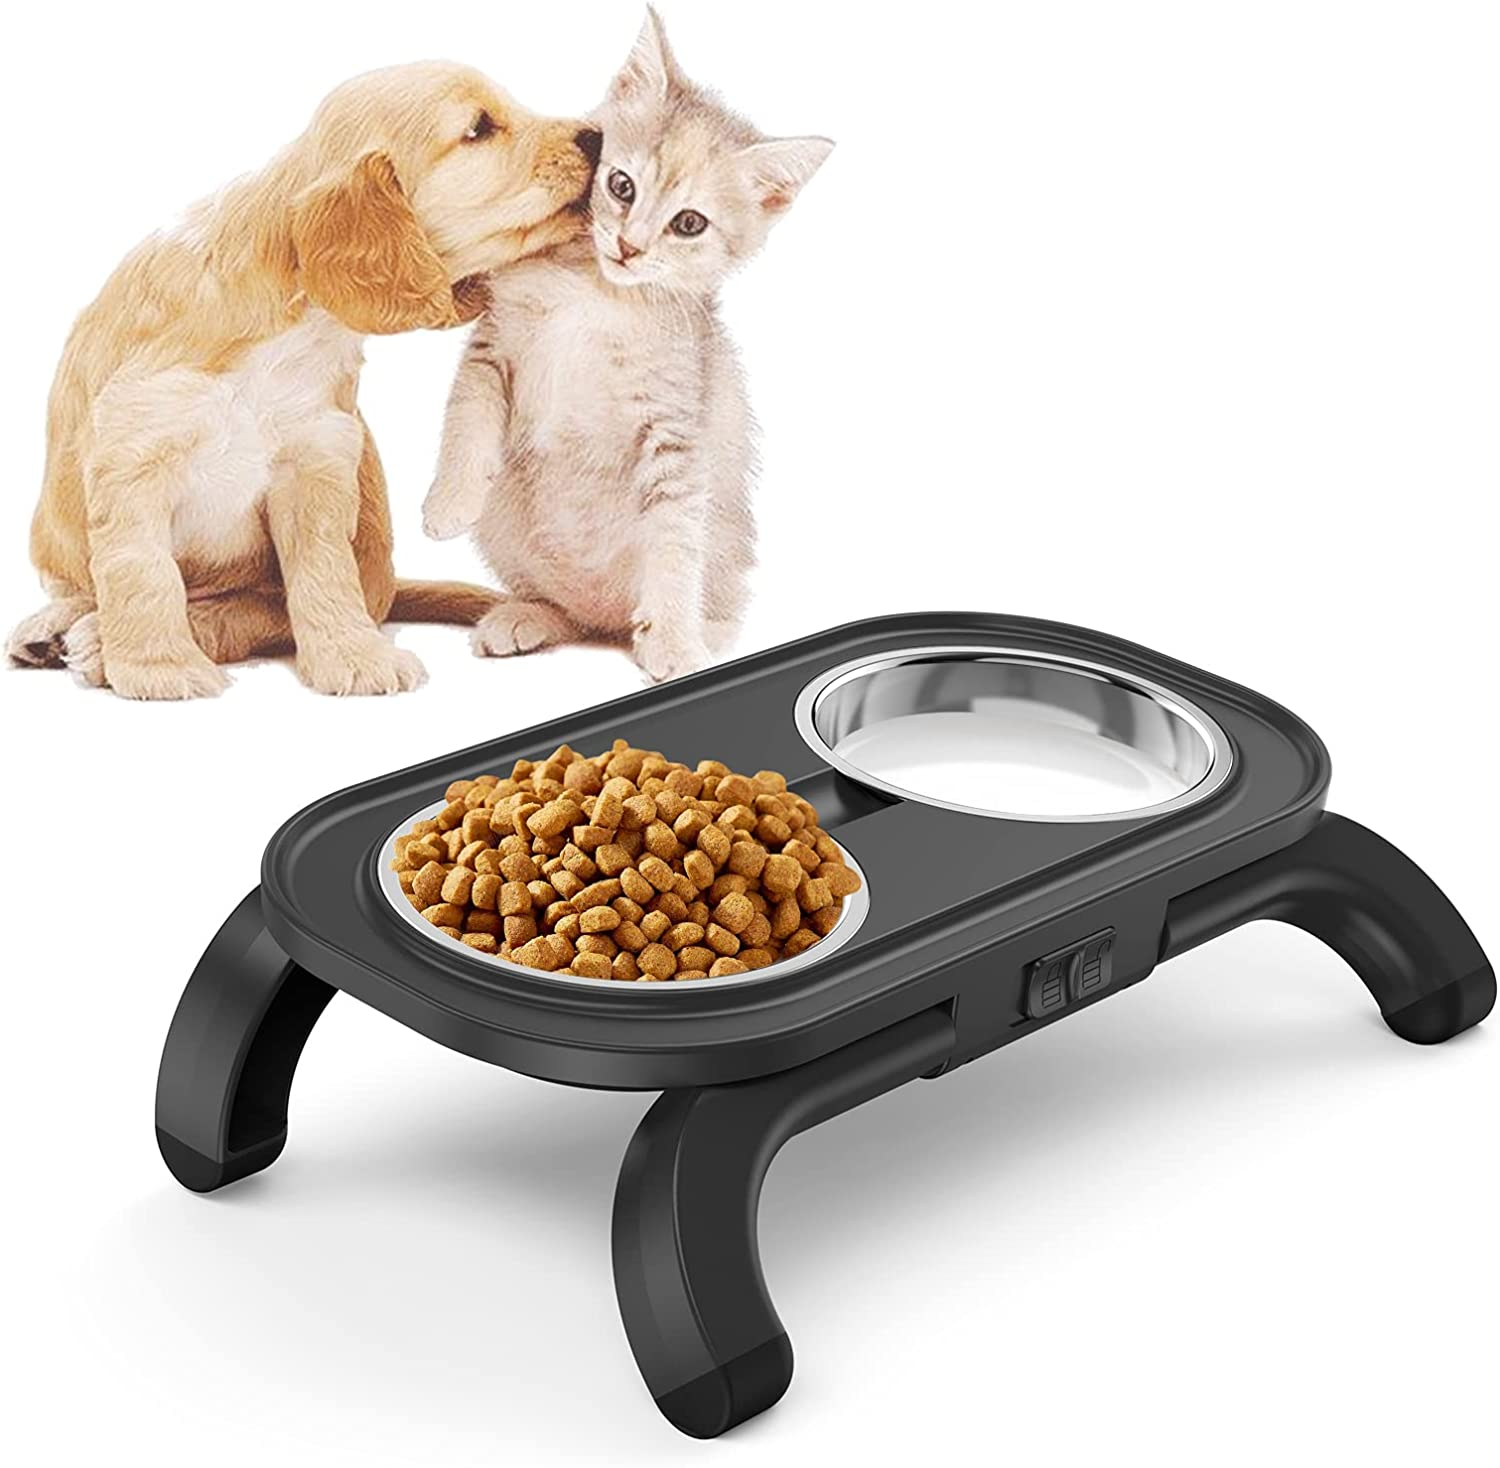 Elevated Cat Bowls, Adjustable Raised Food Feeding Bowl for Cats and Small Dogs, 1.5 L Stainless Steel Dog Dishes with Non-Slip Stand